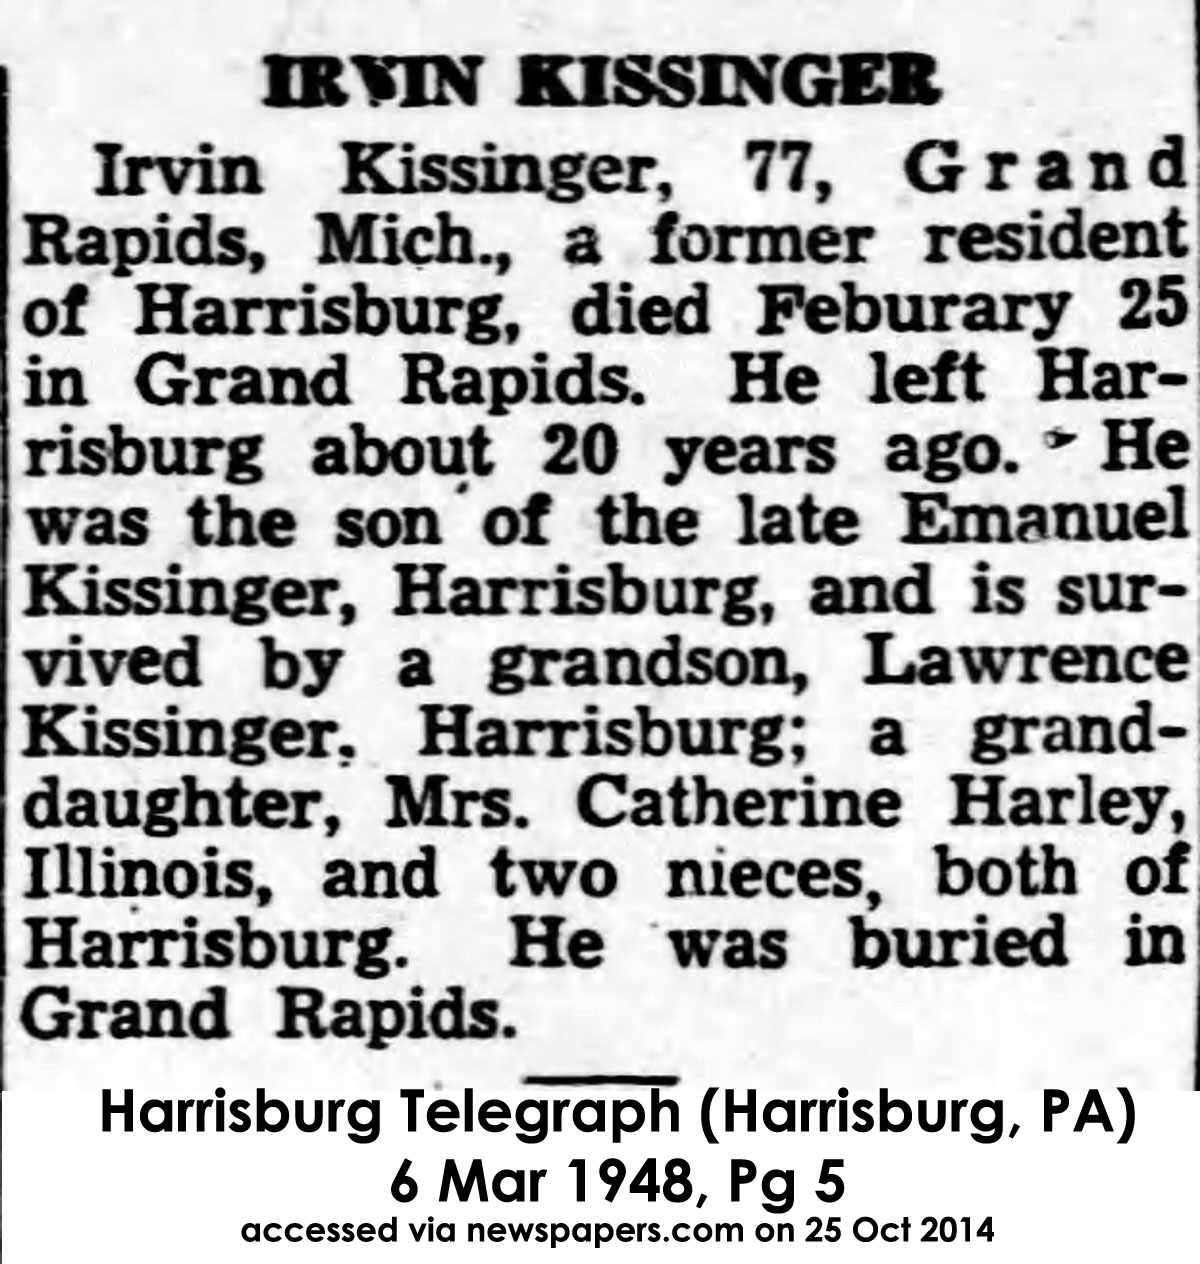 KissingerIrvin-obit-001